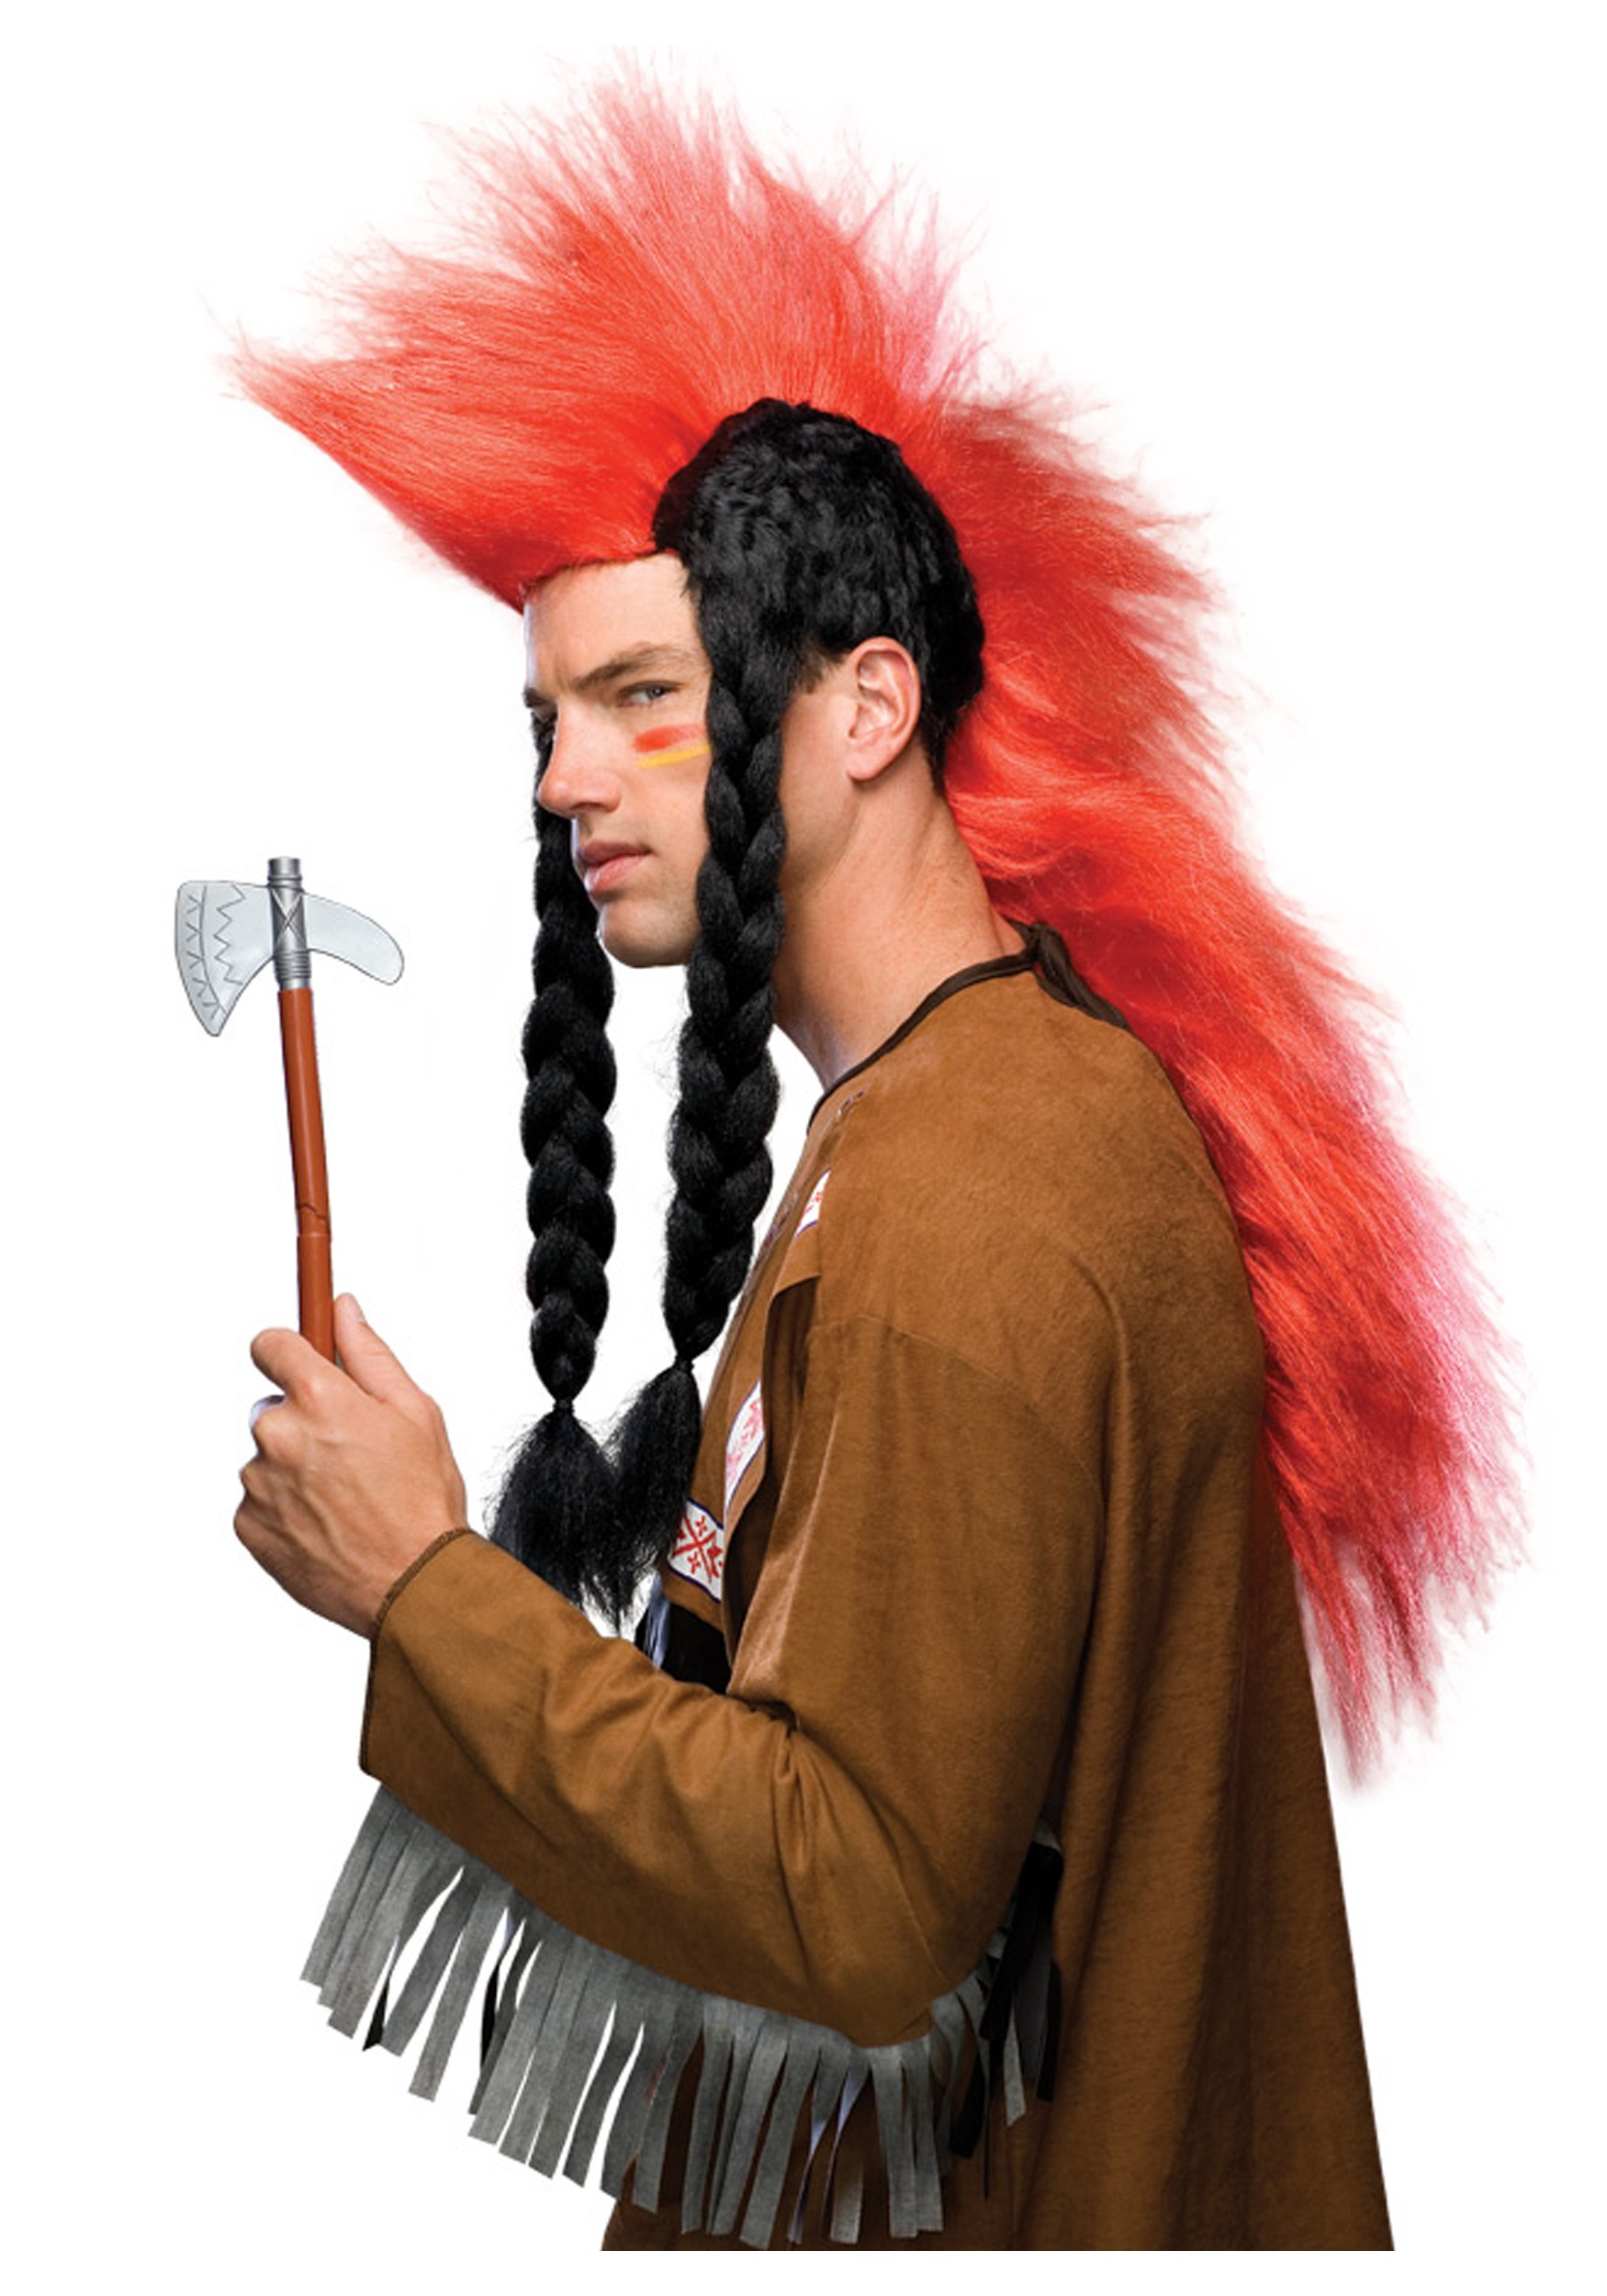 Dirtycapitol Hairstyle Red Indian Hair Style